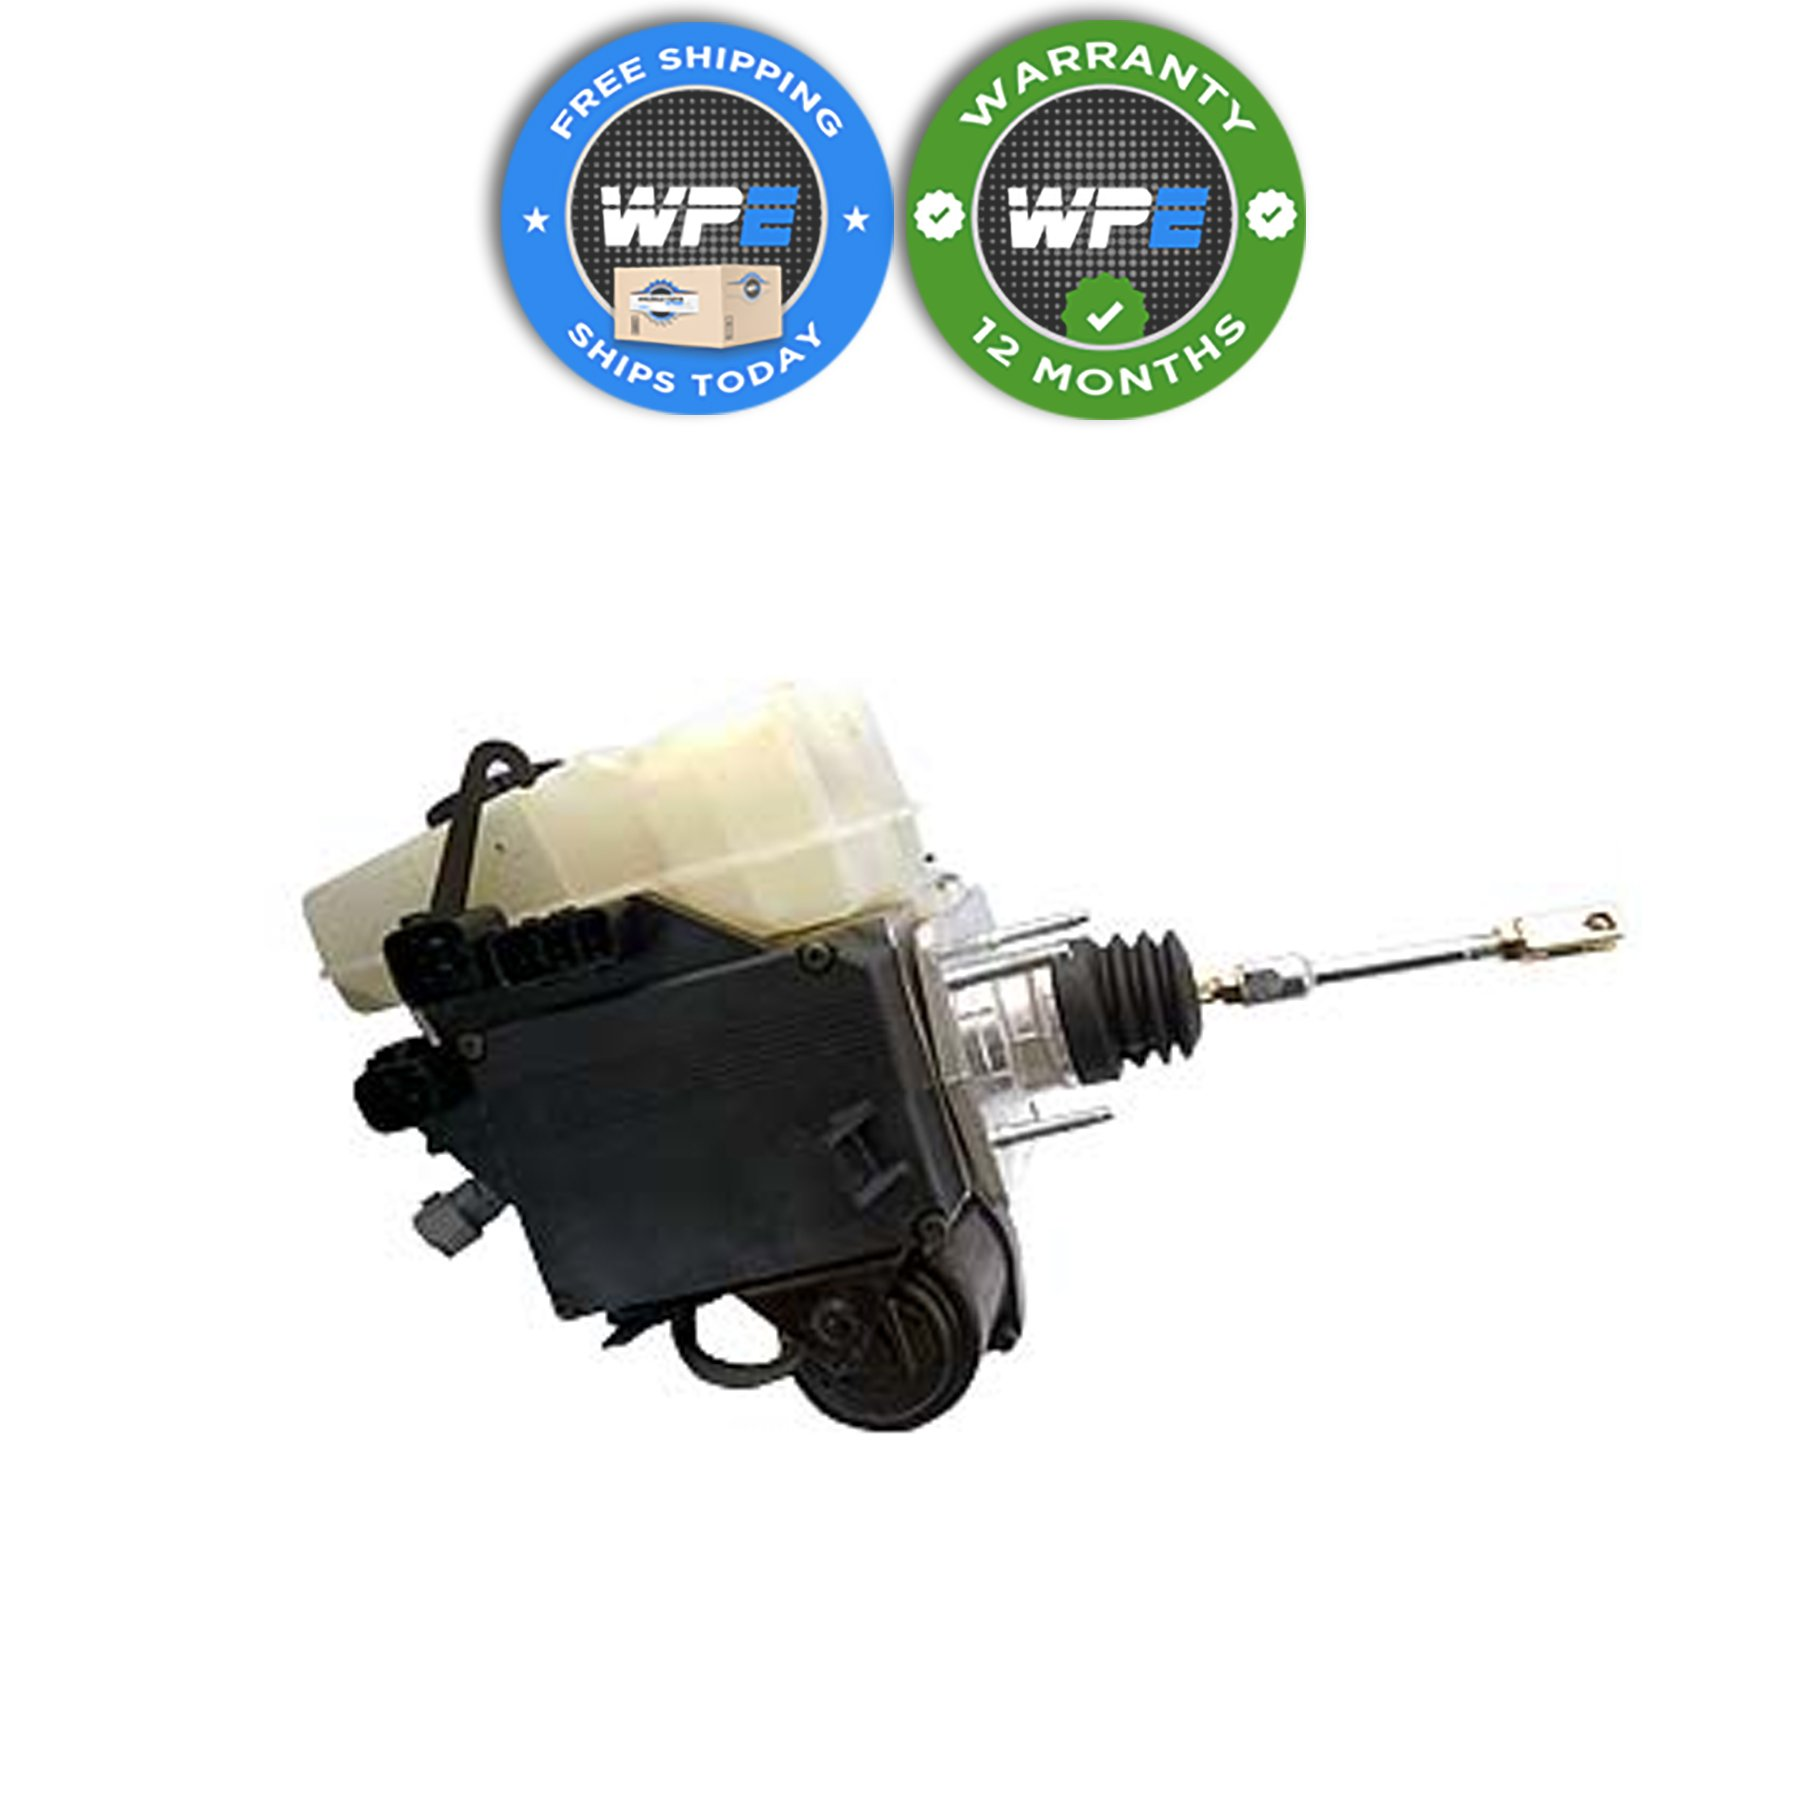 2001 - 2002 Complete Refurbished Toyota 4Runner ABS Unit 47210-35040 /  47050-35010 - Wholesale Parts Express